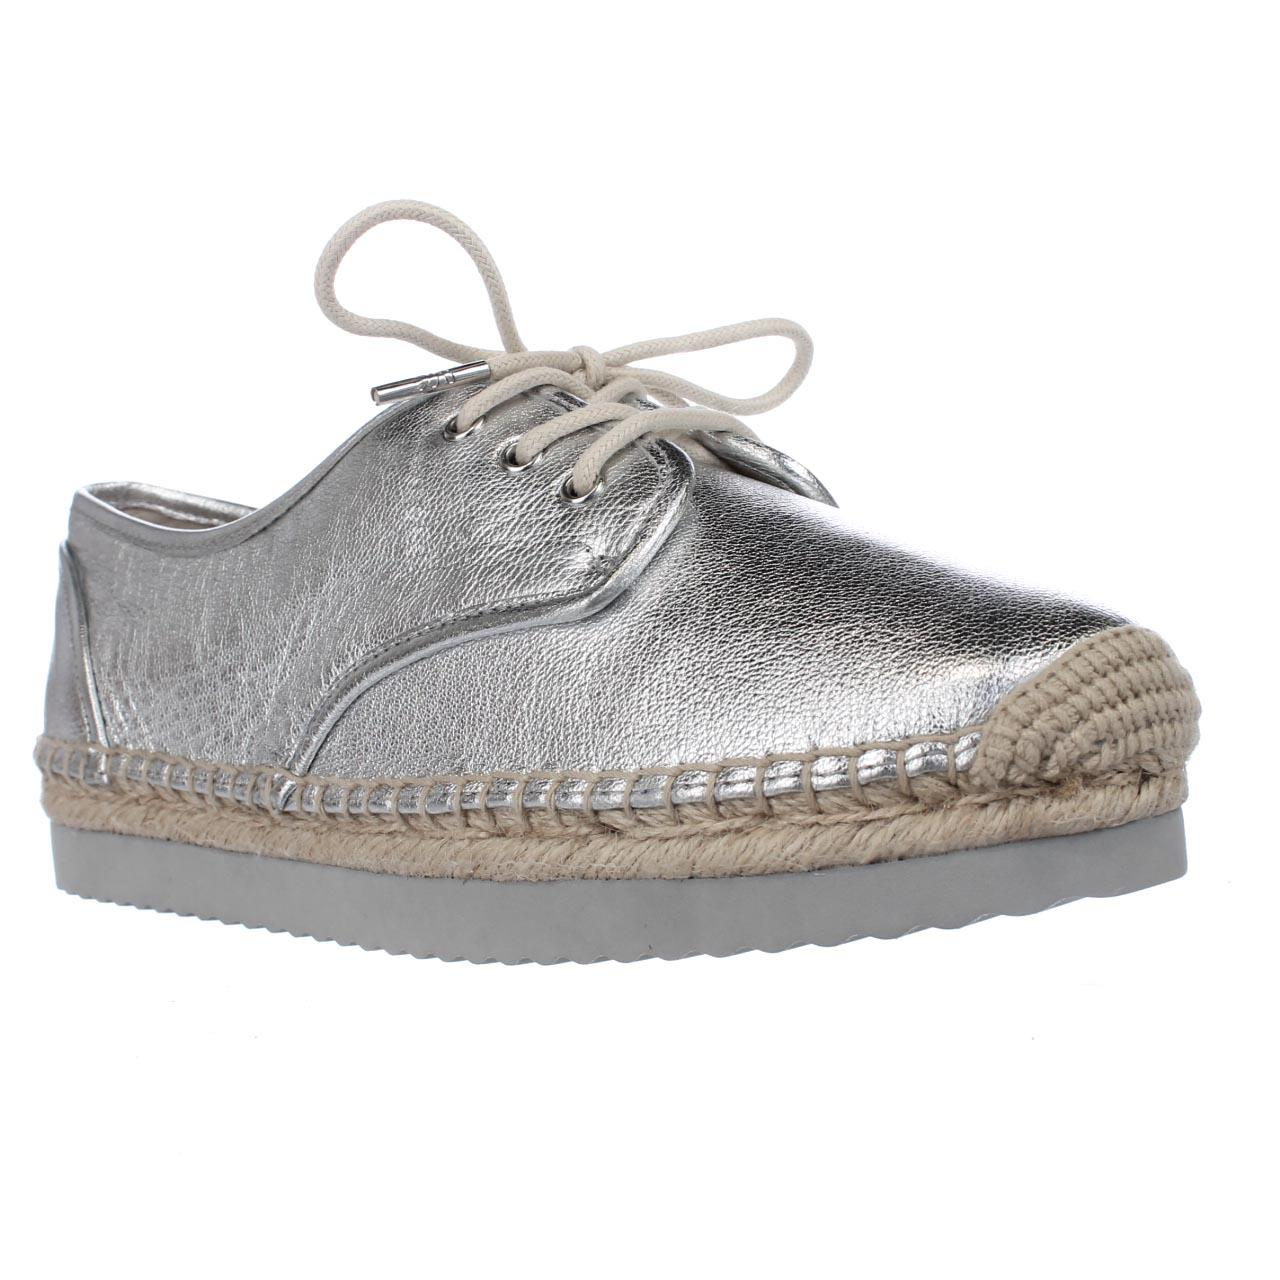 Michael Michael Kors - Damen - Hastings Lace Up - Espadrilles - blau